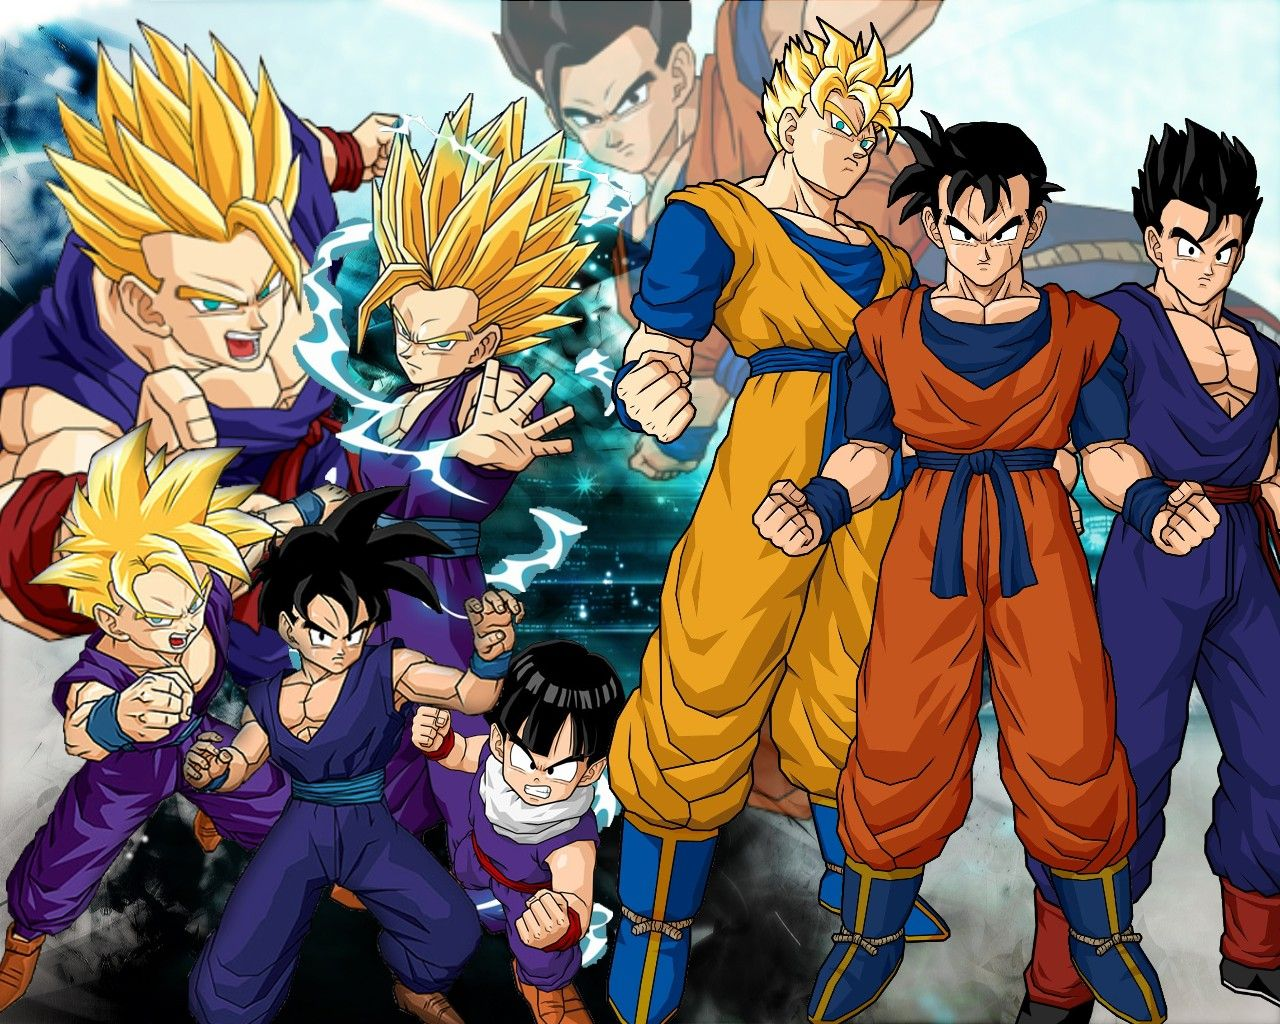 Dbz_Gohan_Wallpaper_by_ssdeath3